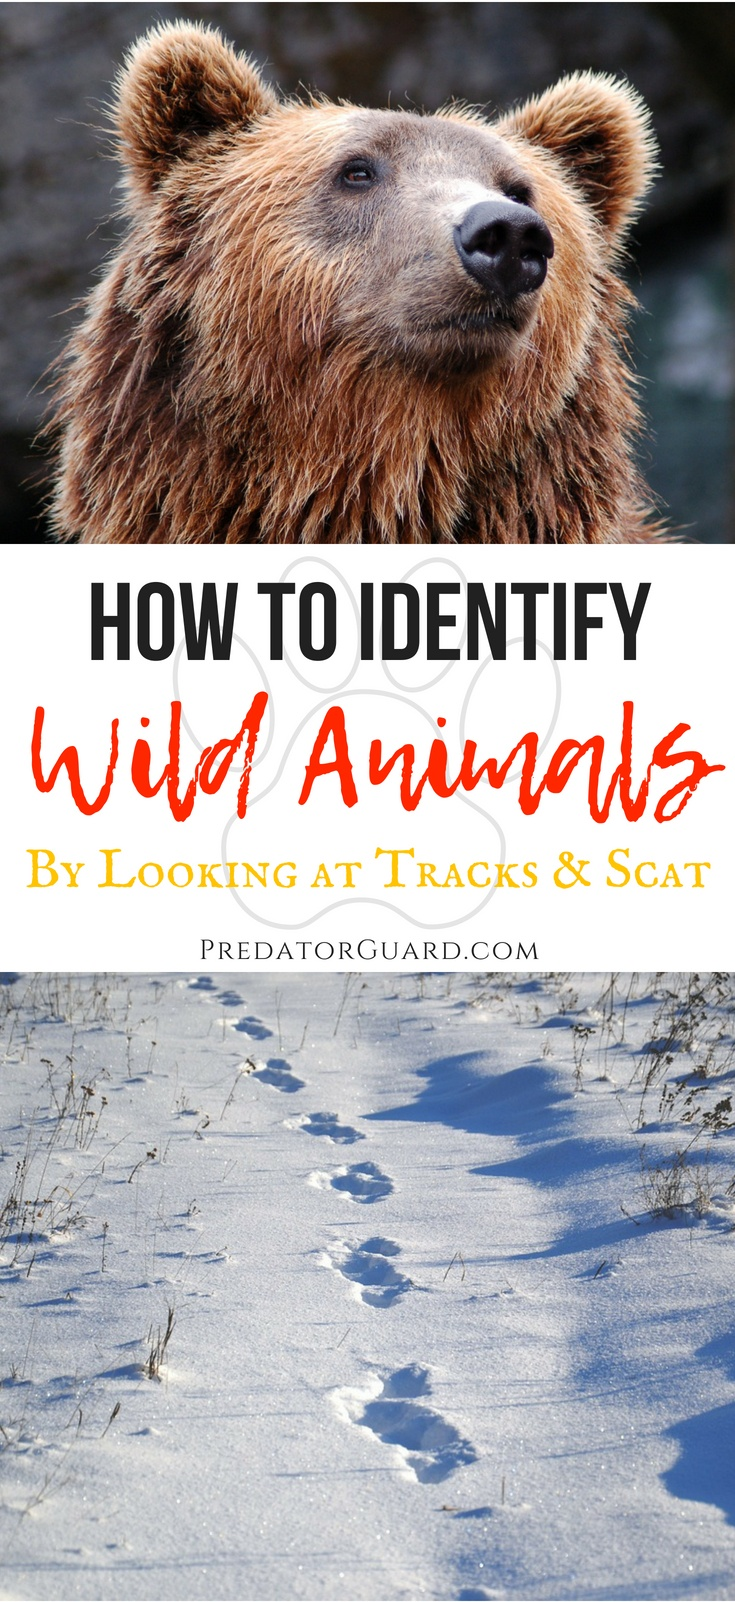 How-To-Identify-Wild-Animals-By-Tracks-and-Scat